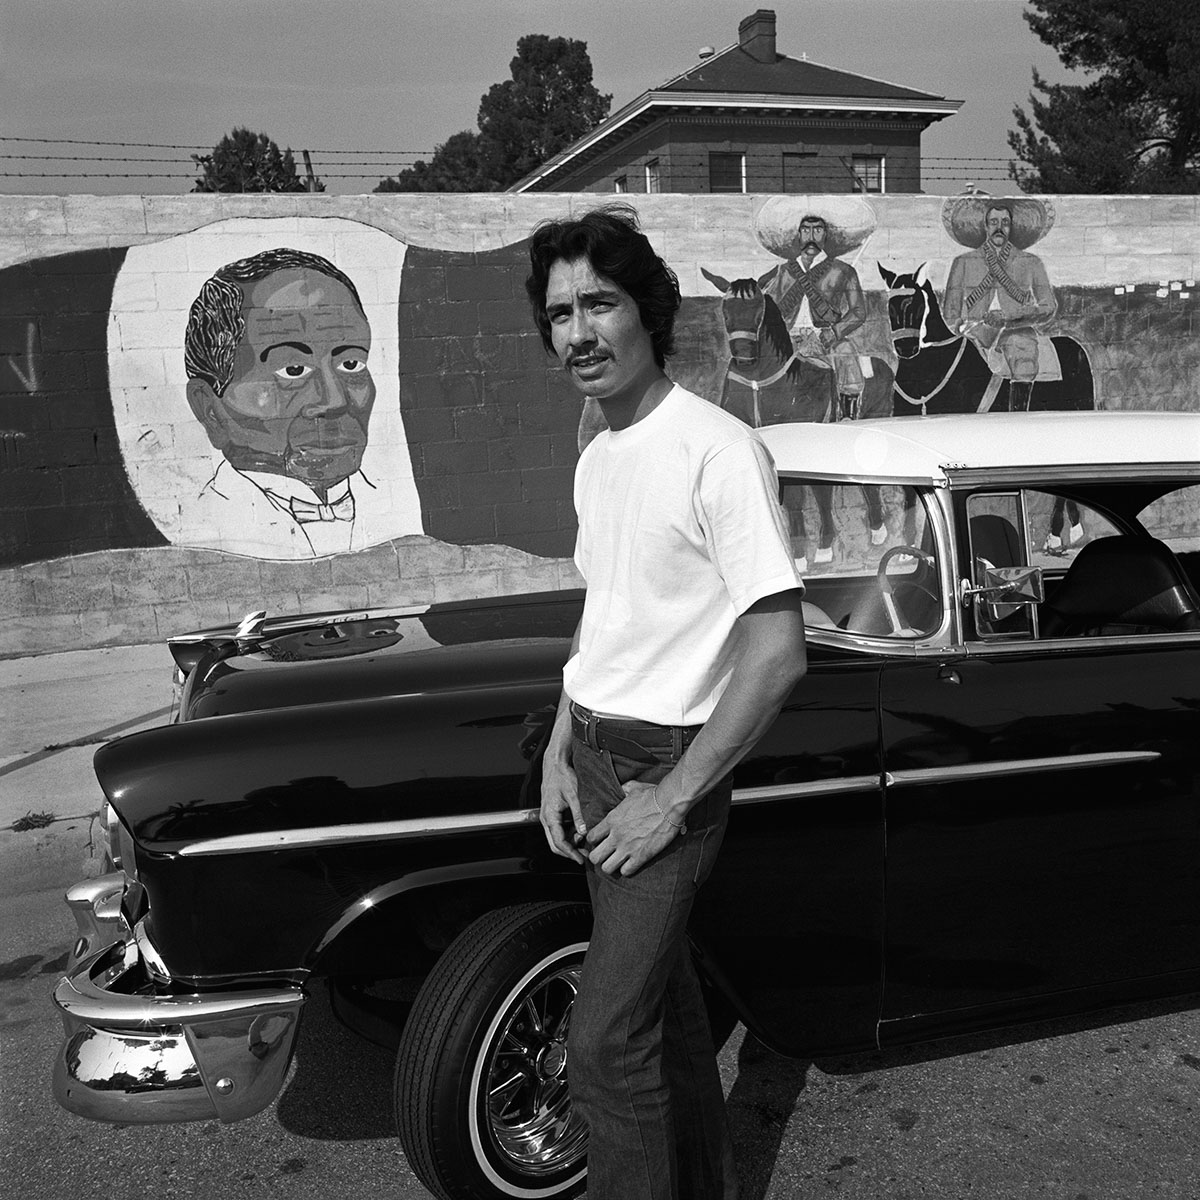 Young Man & '57 Chevy, East Los Angeles, 1978